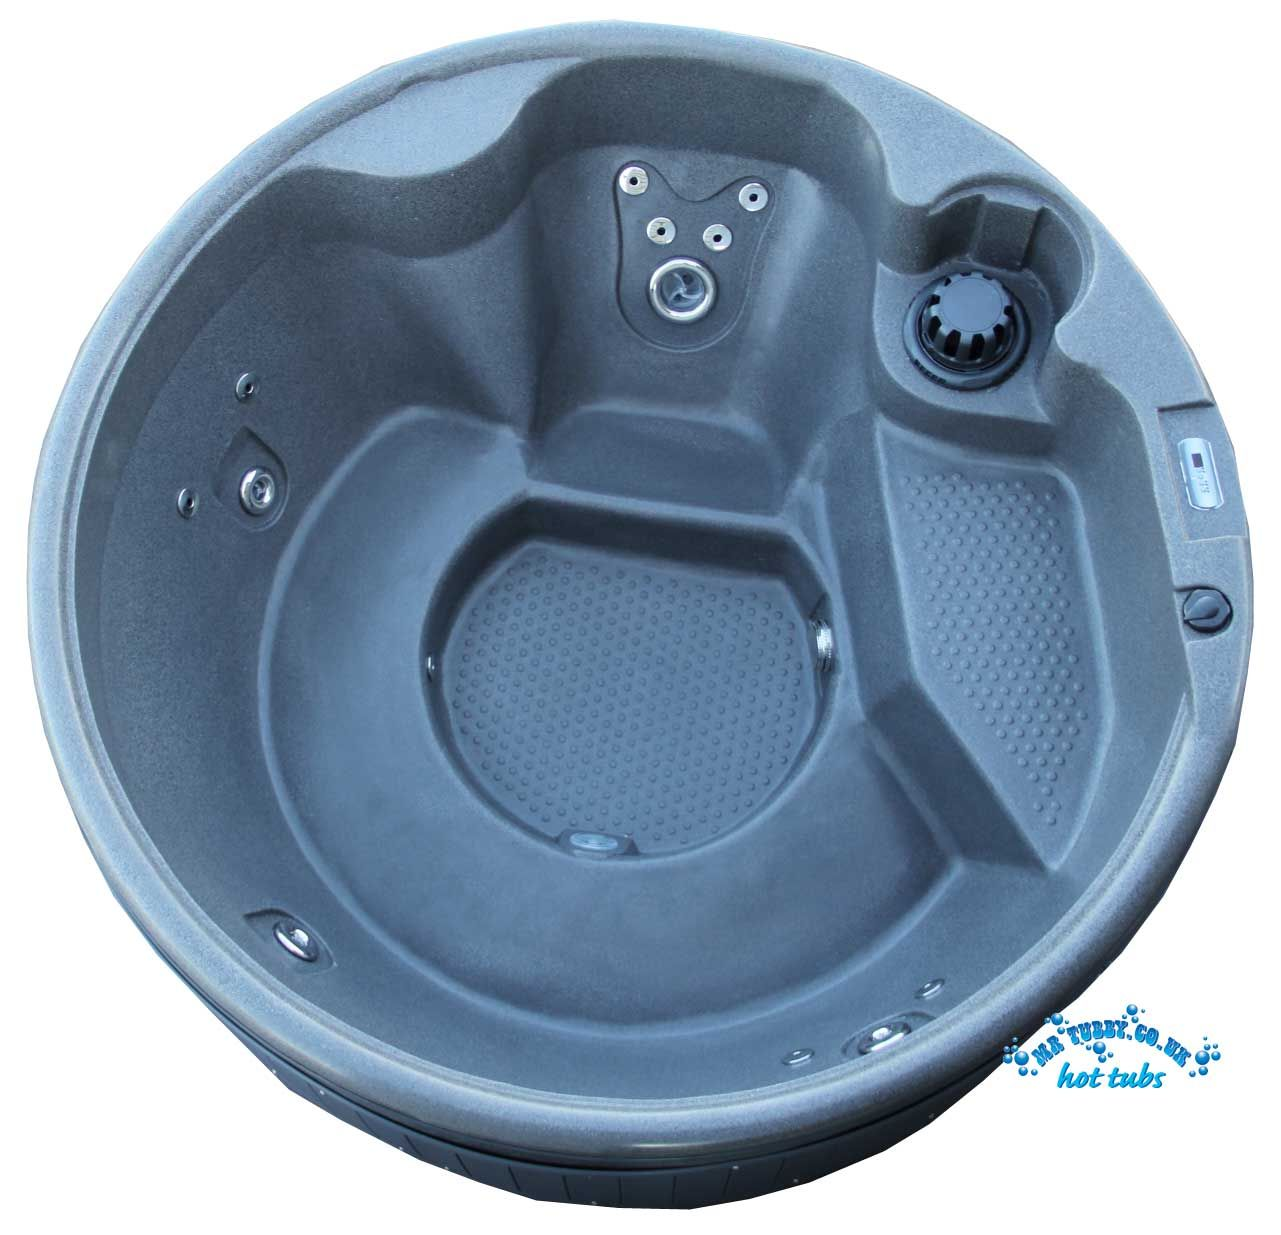 Luxury Hot Tub Hire of a Mr Tubby Fun Tub - Hydrotherapy spa with ...